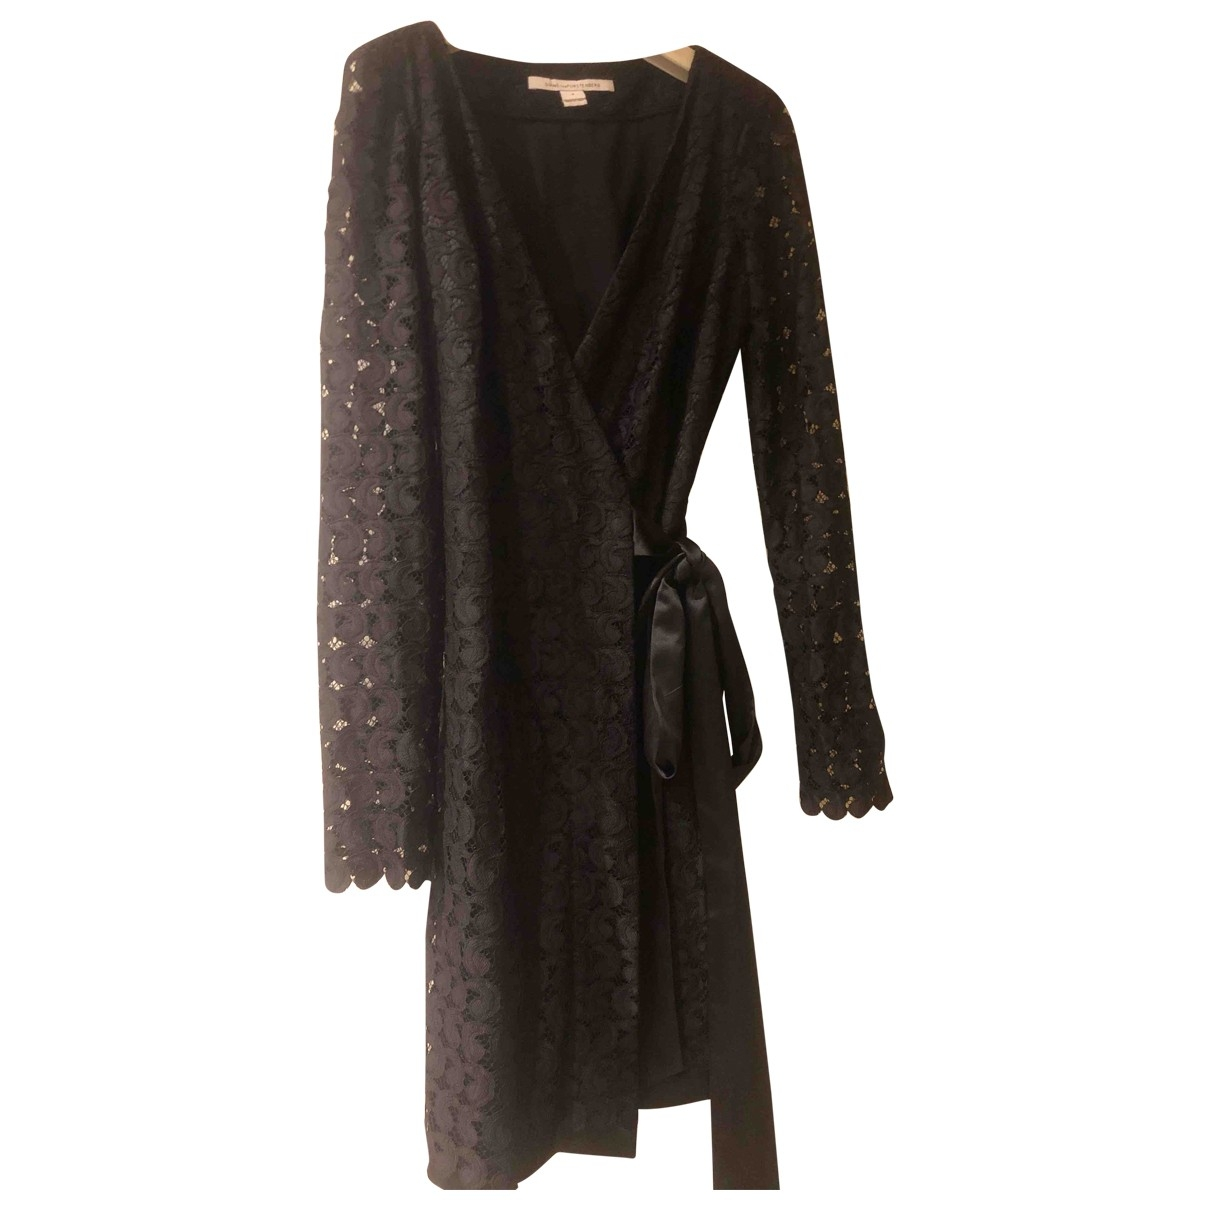 Diane Von Furstenberg \N Black Lace dress for Women 4 UK